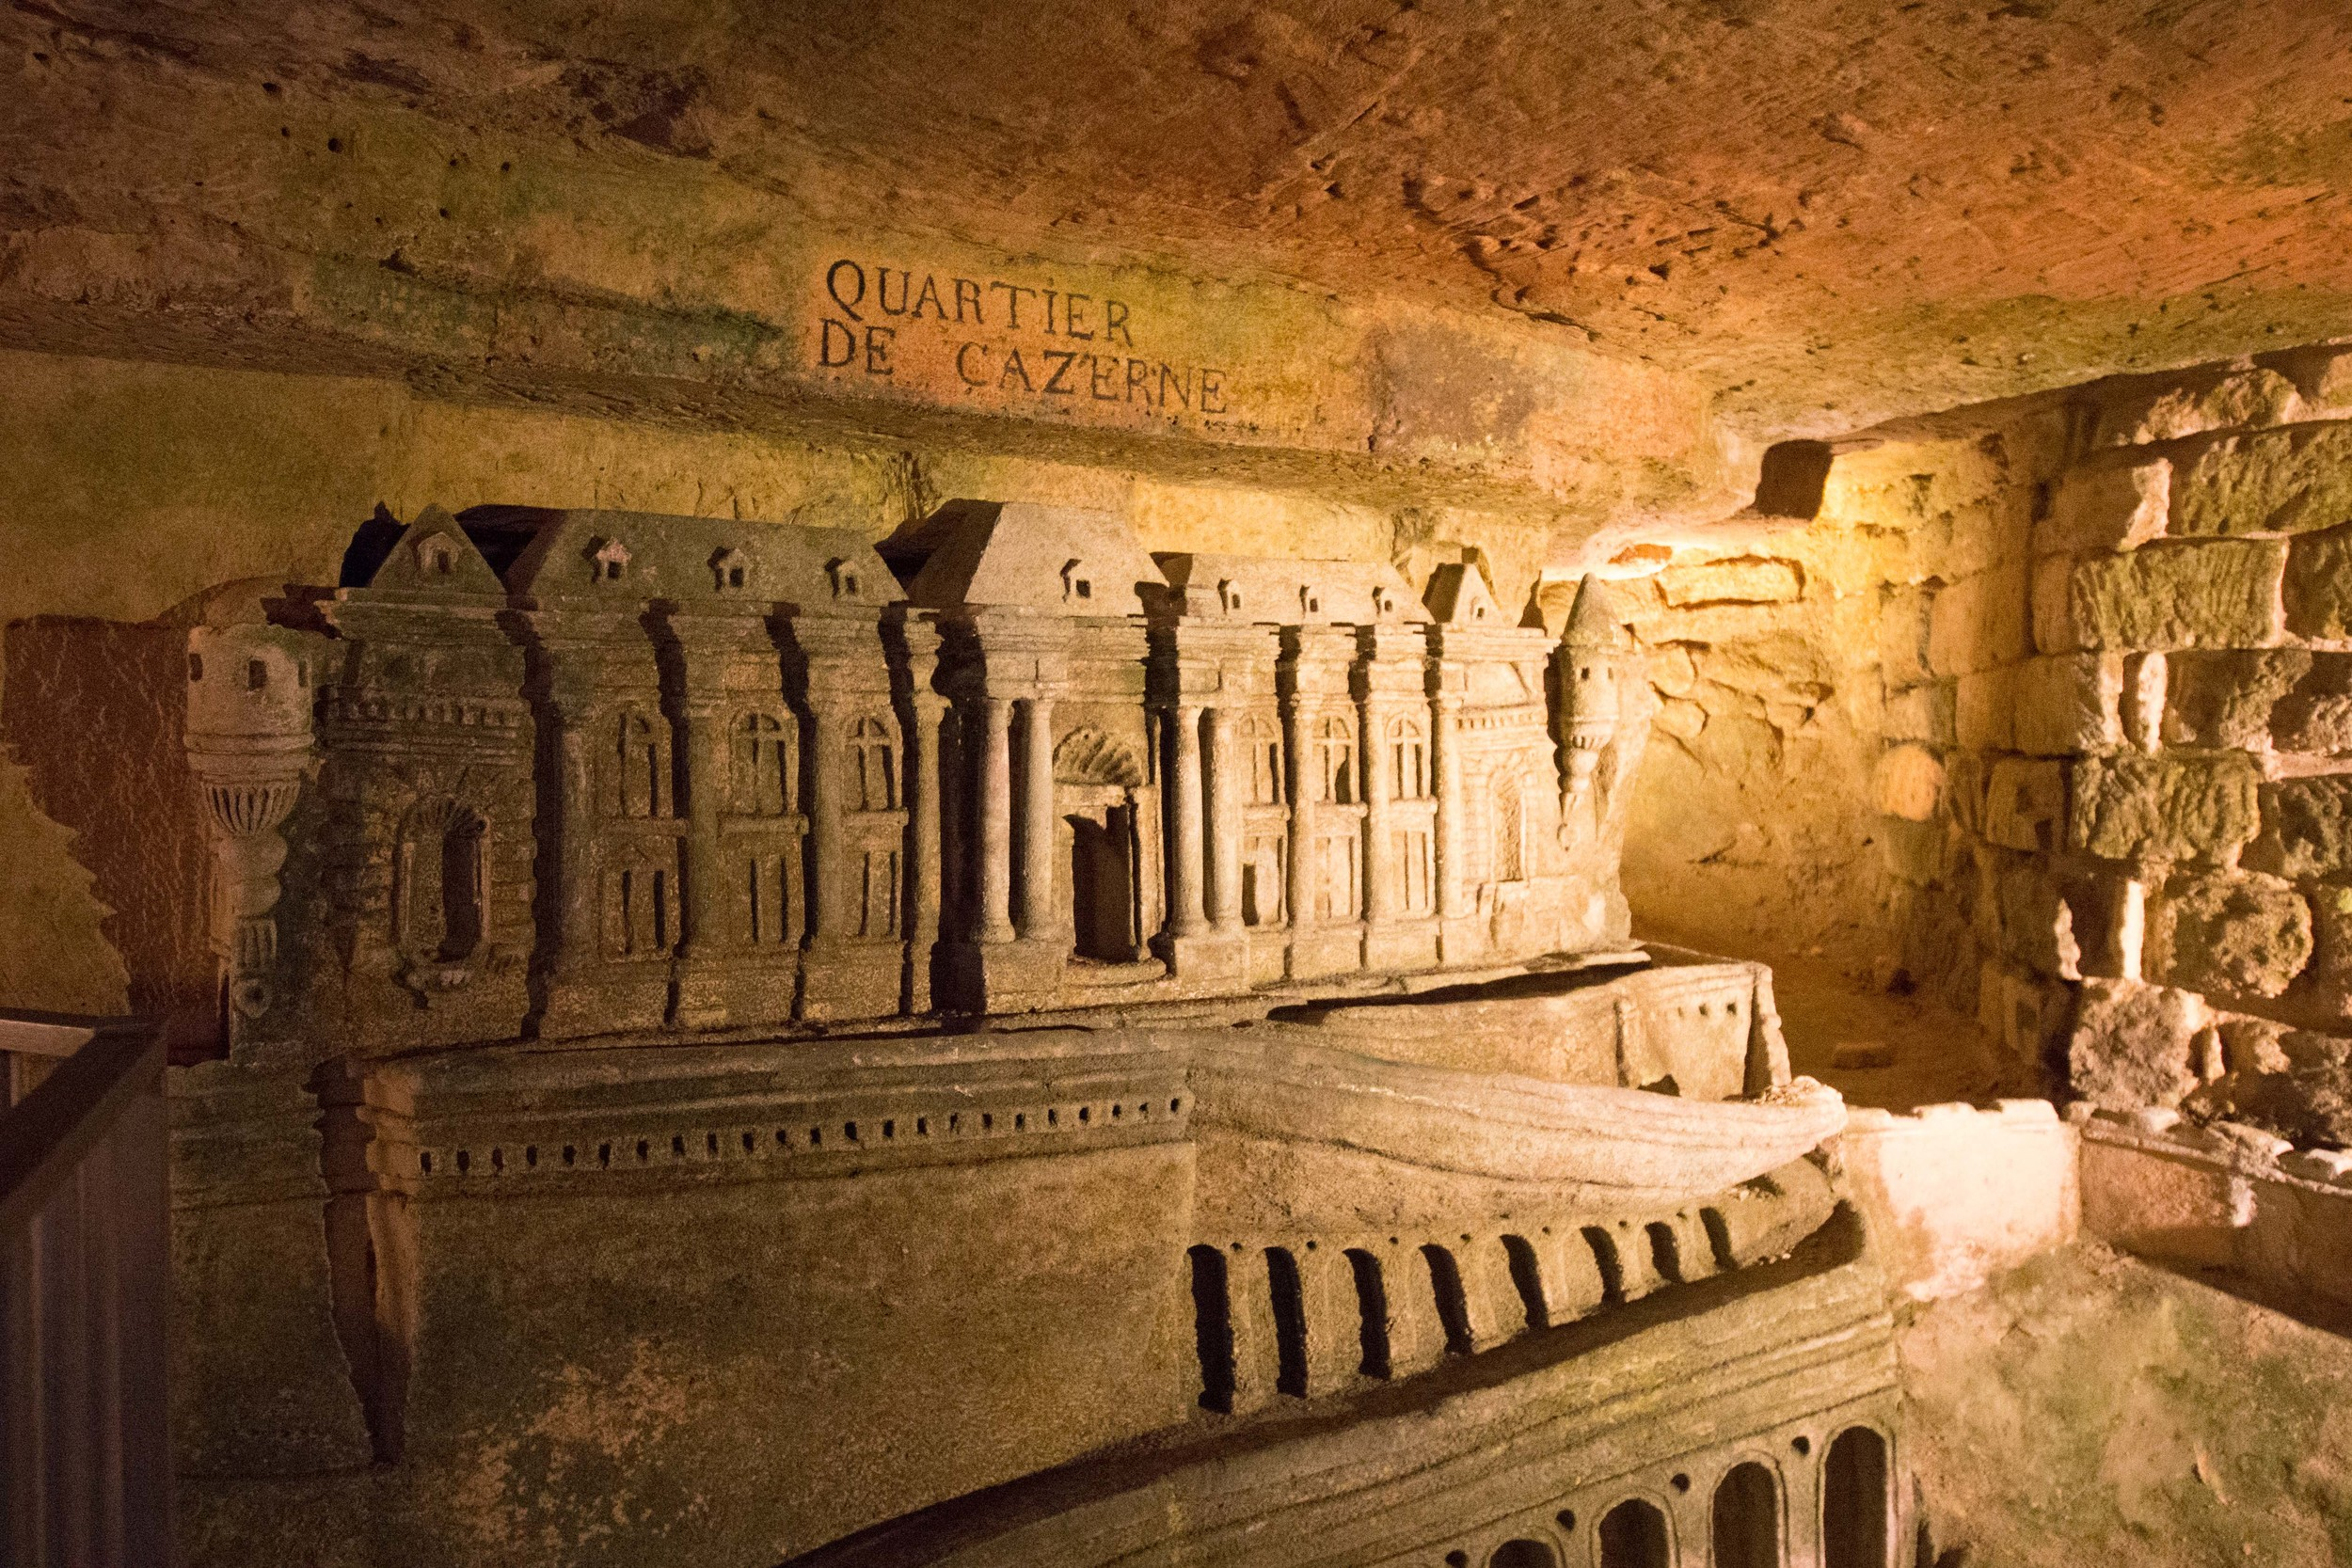 Remarkable detailed carvings in the tunnels